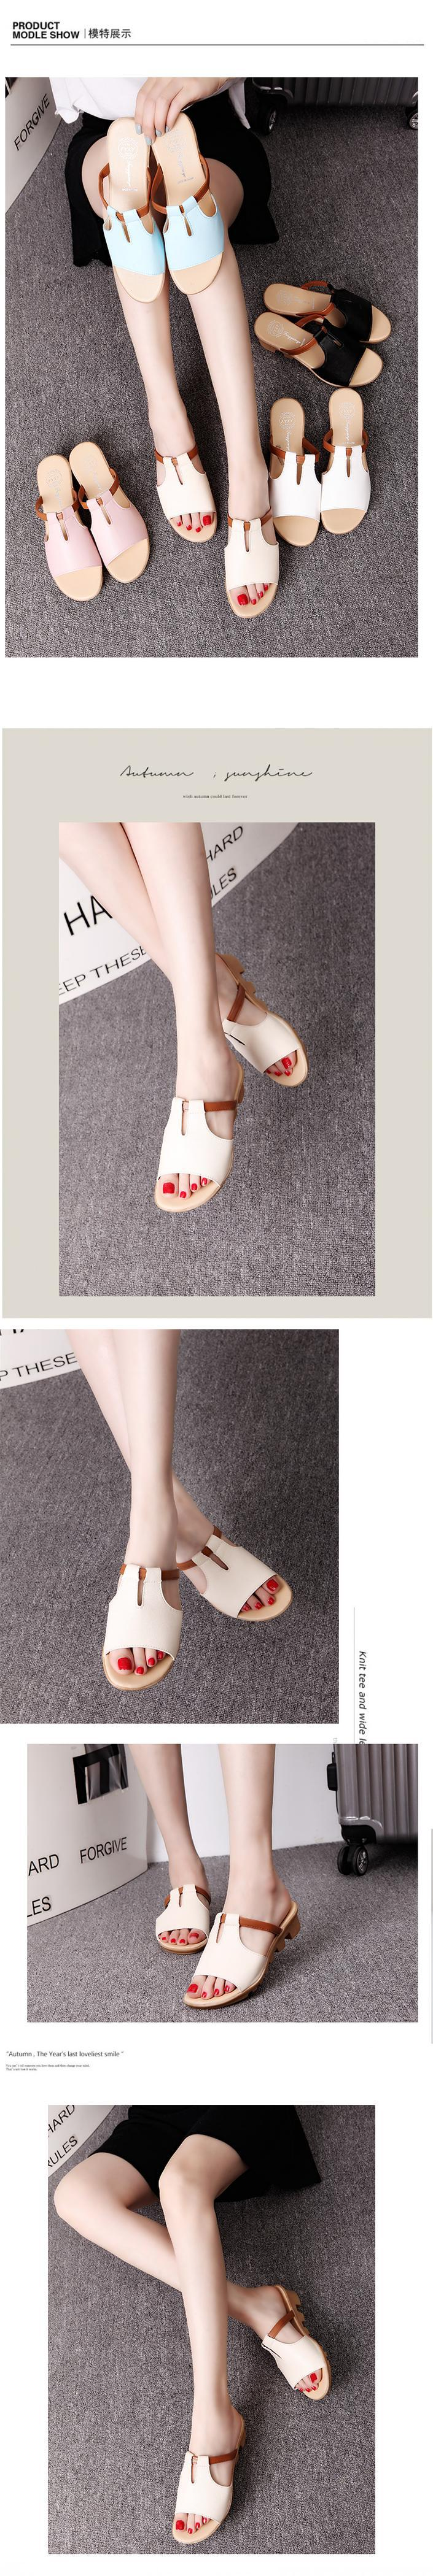 New Summer Slipper Women Slippers Slides Women Sandals Slippers Word Hollow out Women Single Sandals Non-slip Fashion B1210 12